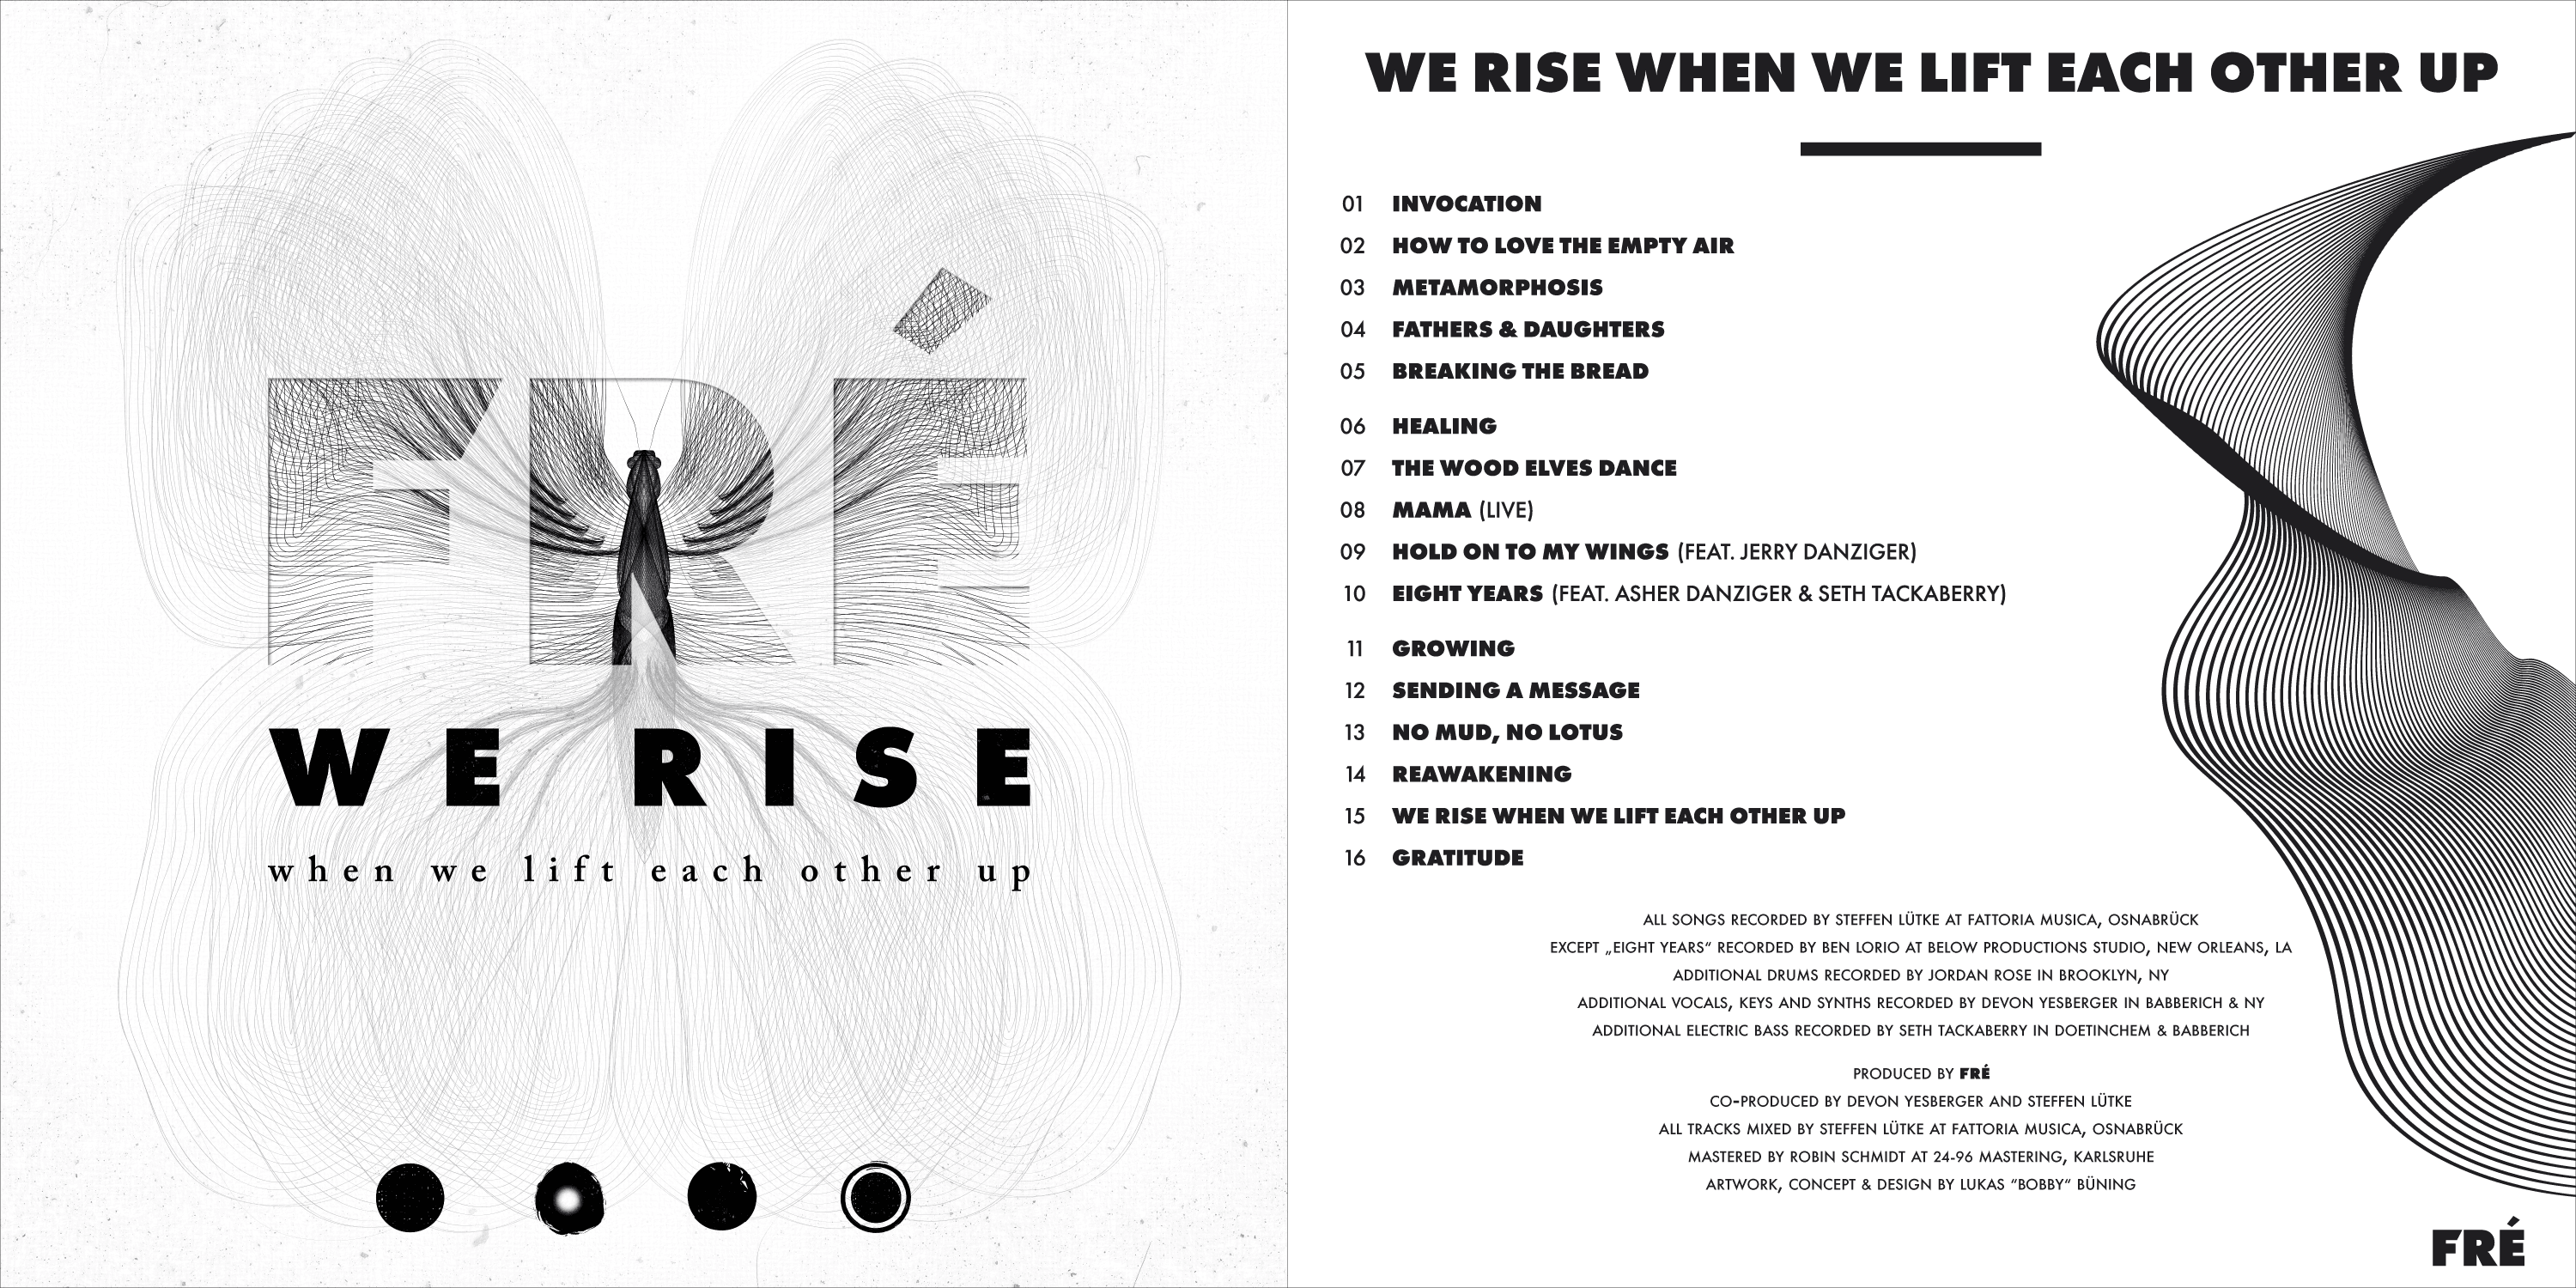 WE RISE When We Lift Each Othr Up - Limited Edition front- and back-cover